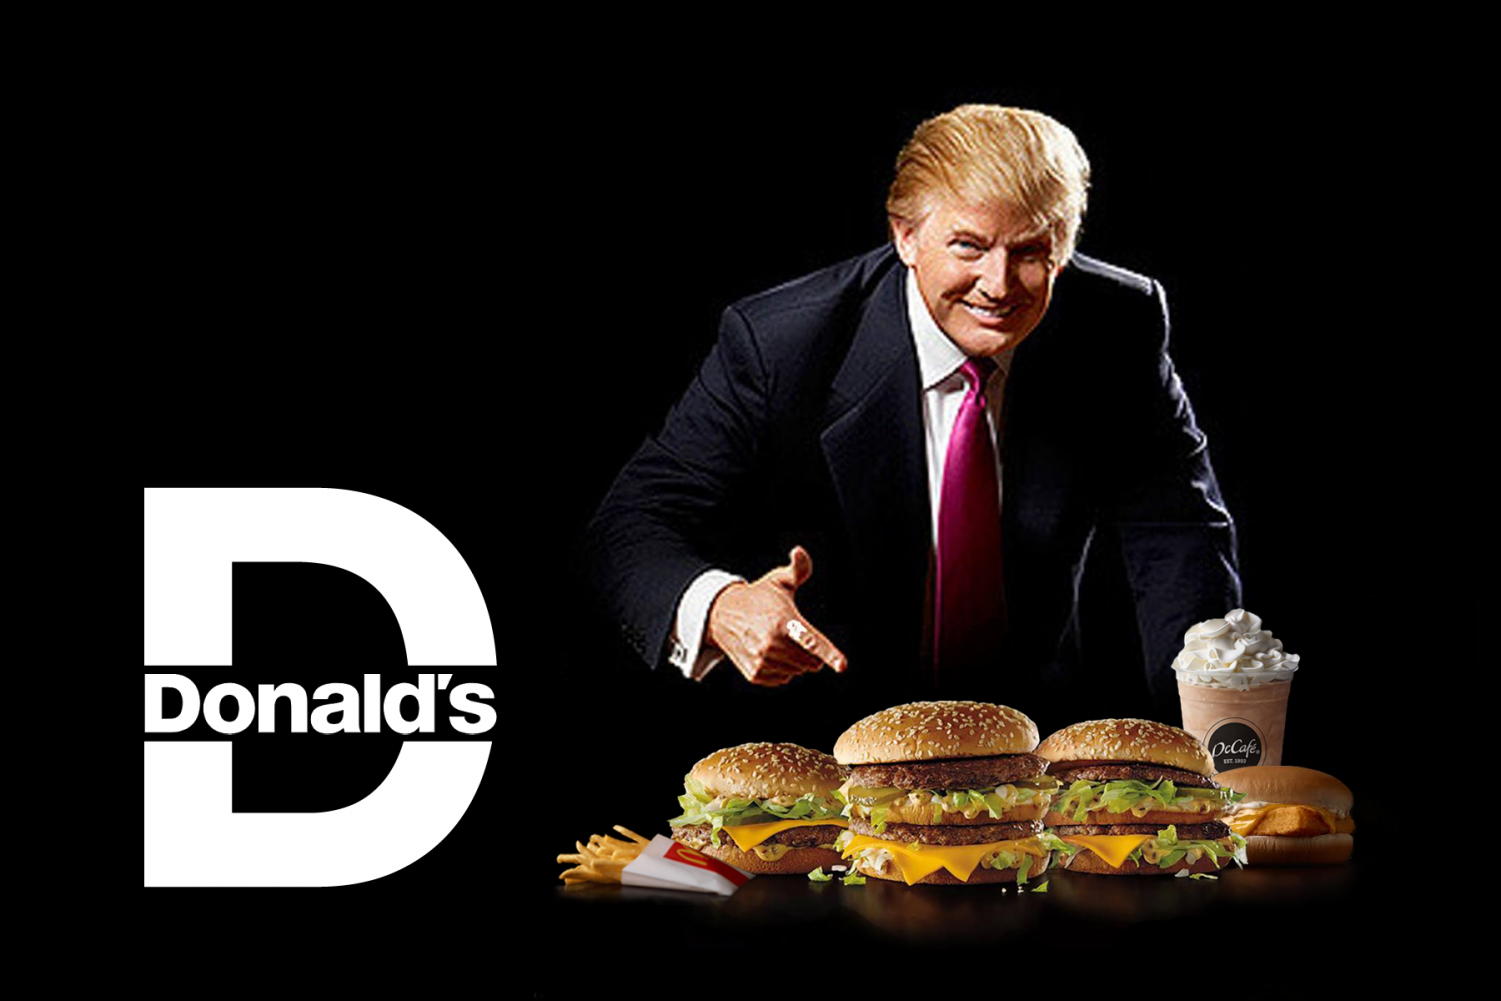 Trump in a new ad for the recently rebranded fast food chain